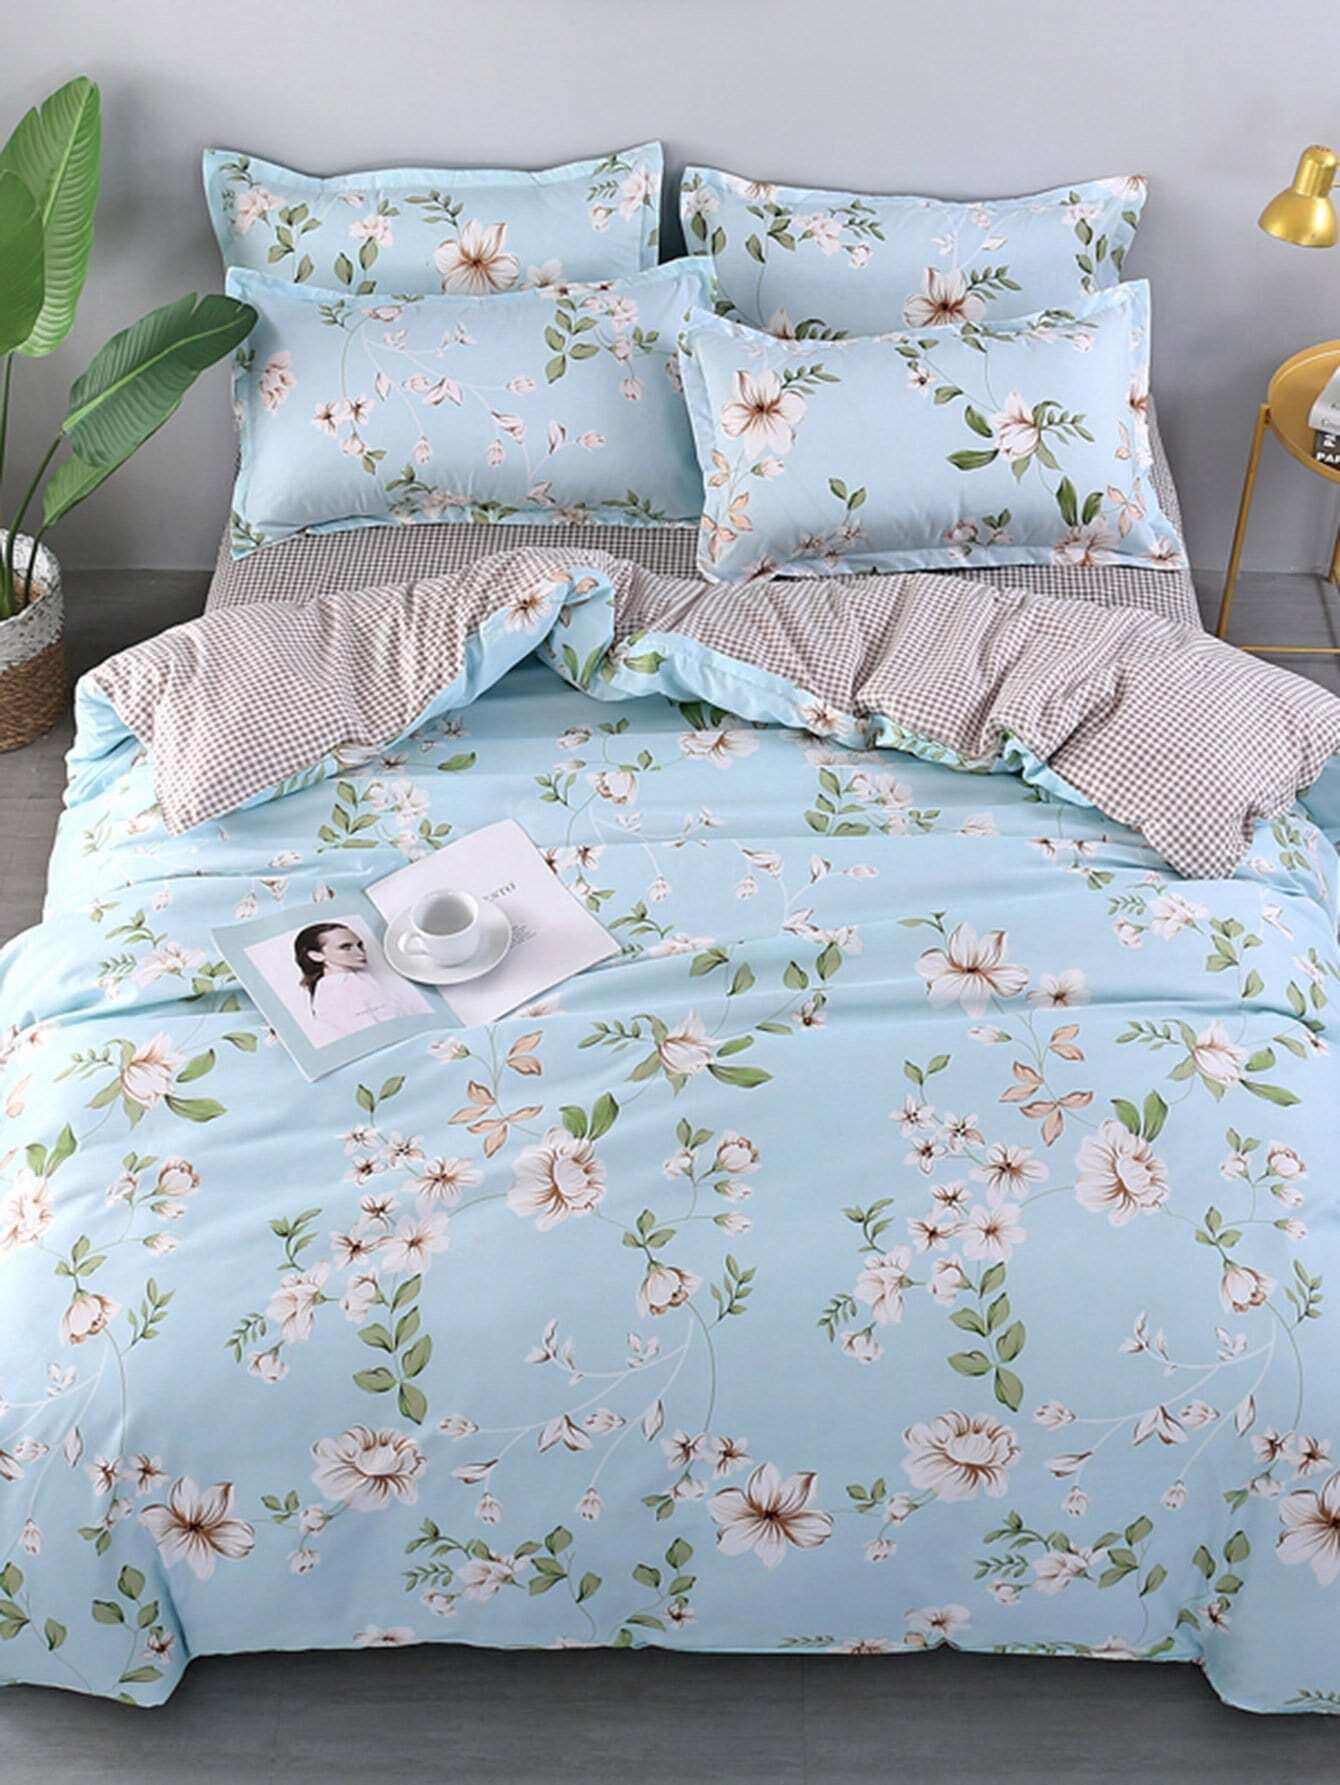 Flower & Grid Print Duvet Cover grid duvet cover set